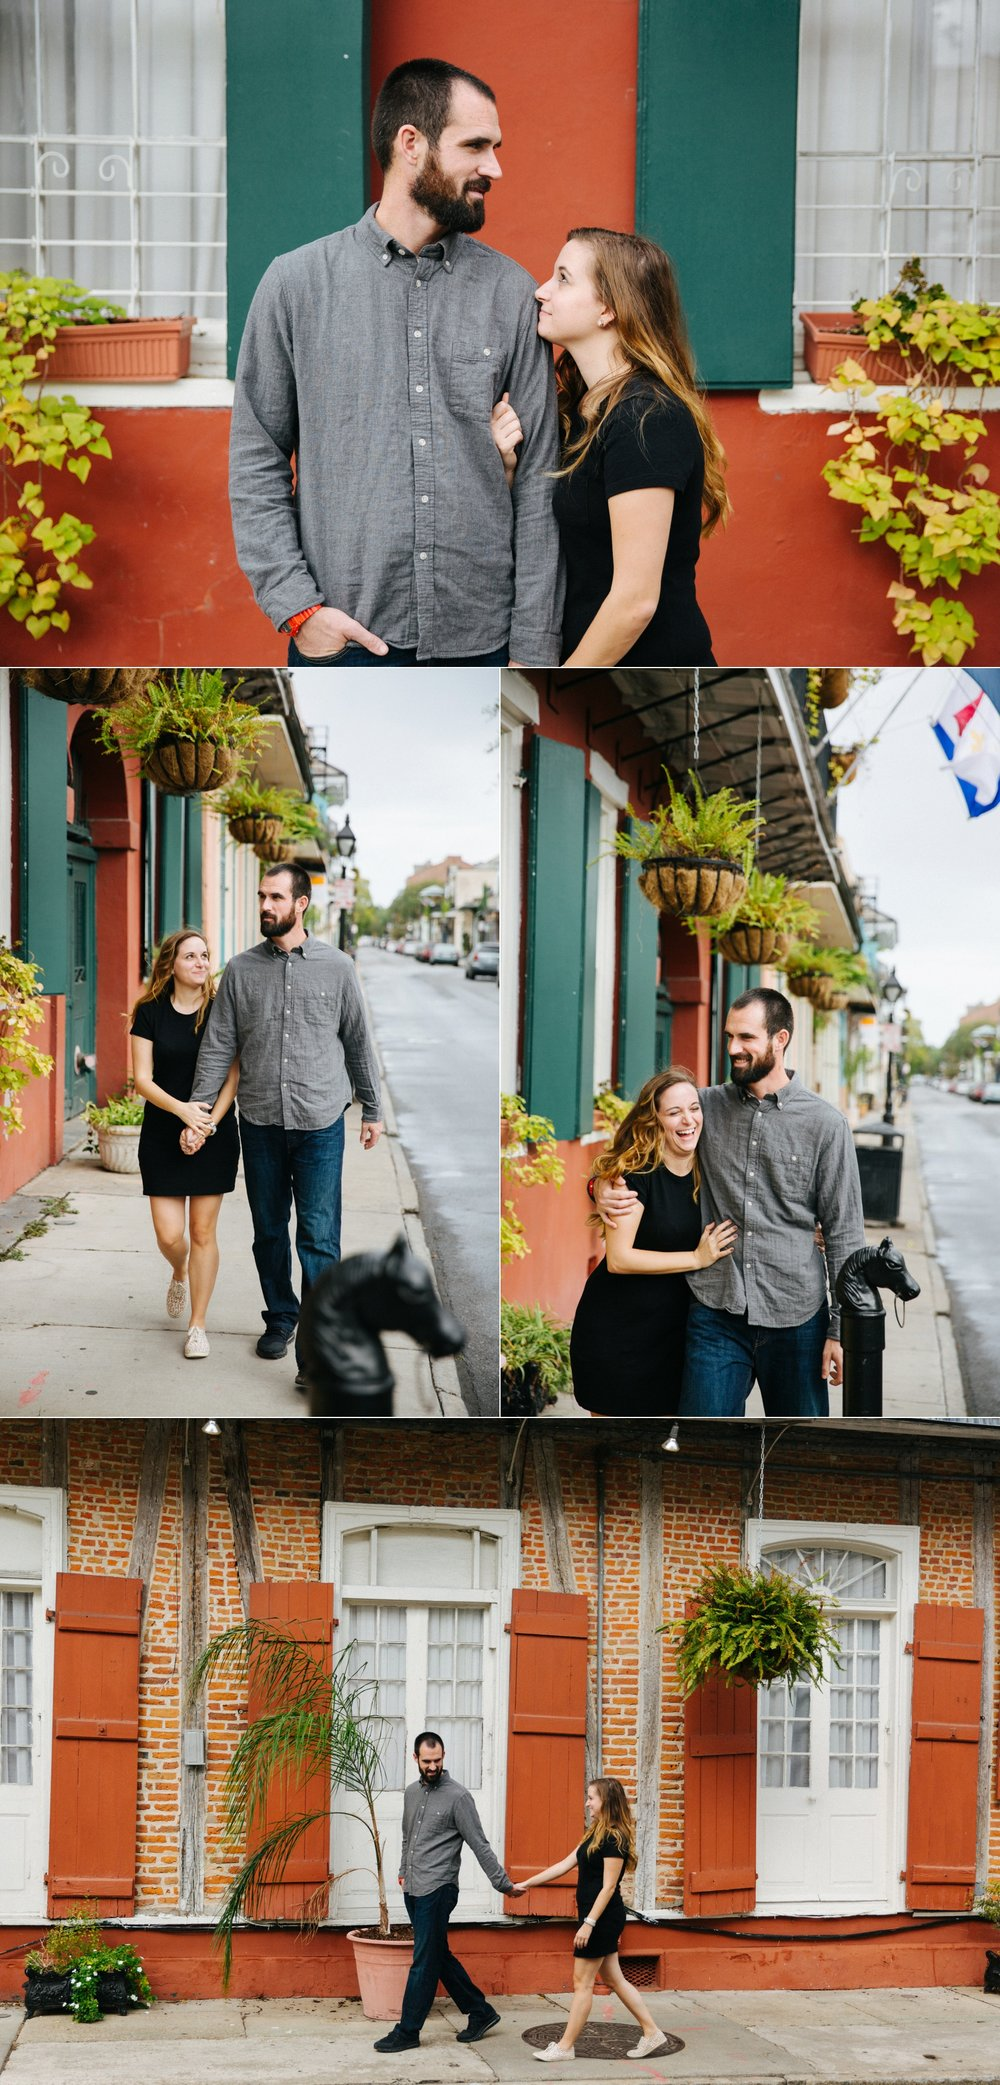 french quarter new orleans engagement session jake and katie photography-008.jpg french quarter new orleans engagement session jake and katie photography-009.jpg french quarter new orleans engagement session jake and katie photography-010.jpg french quarter new orleans engagement session jake and katie photography-011.jpg french quarter new orleans engagement session jake and katie photography-012.jpg french quarter new orleans engagement session jake and katie photography-013.jpg french quarter new orleans engagement session jake and katie photography-014.jpg